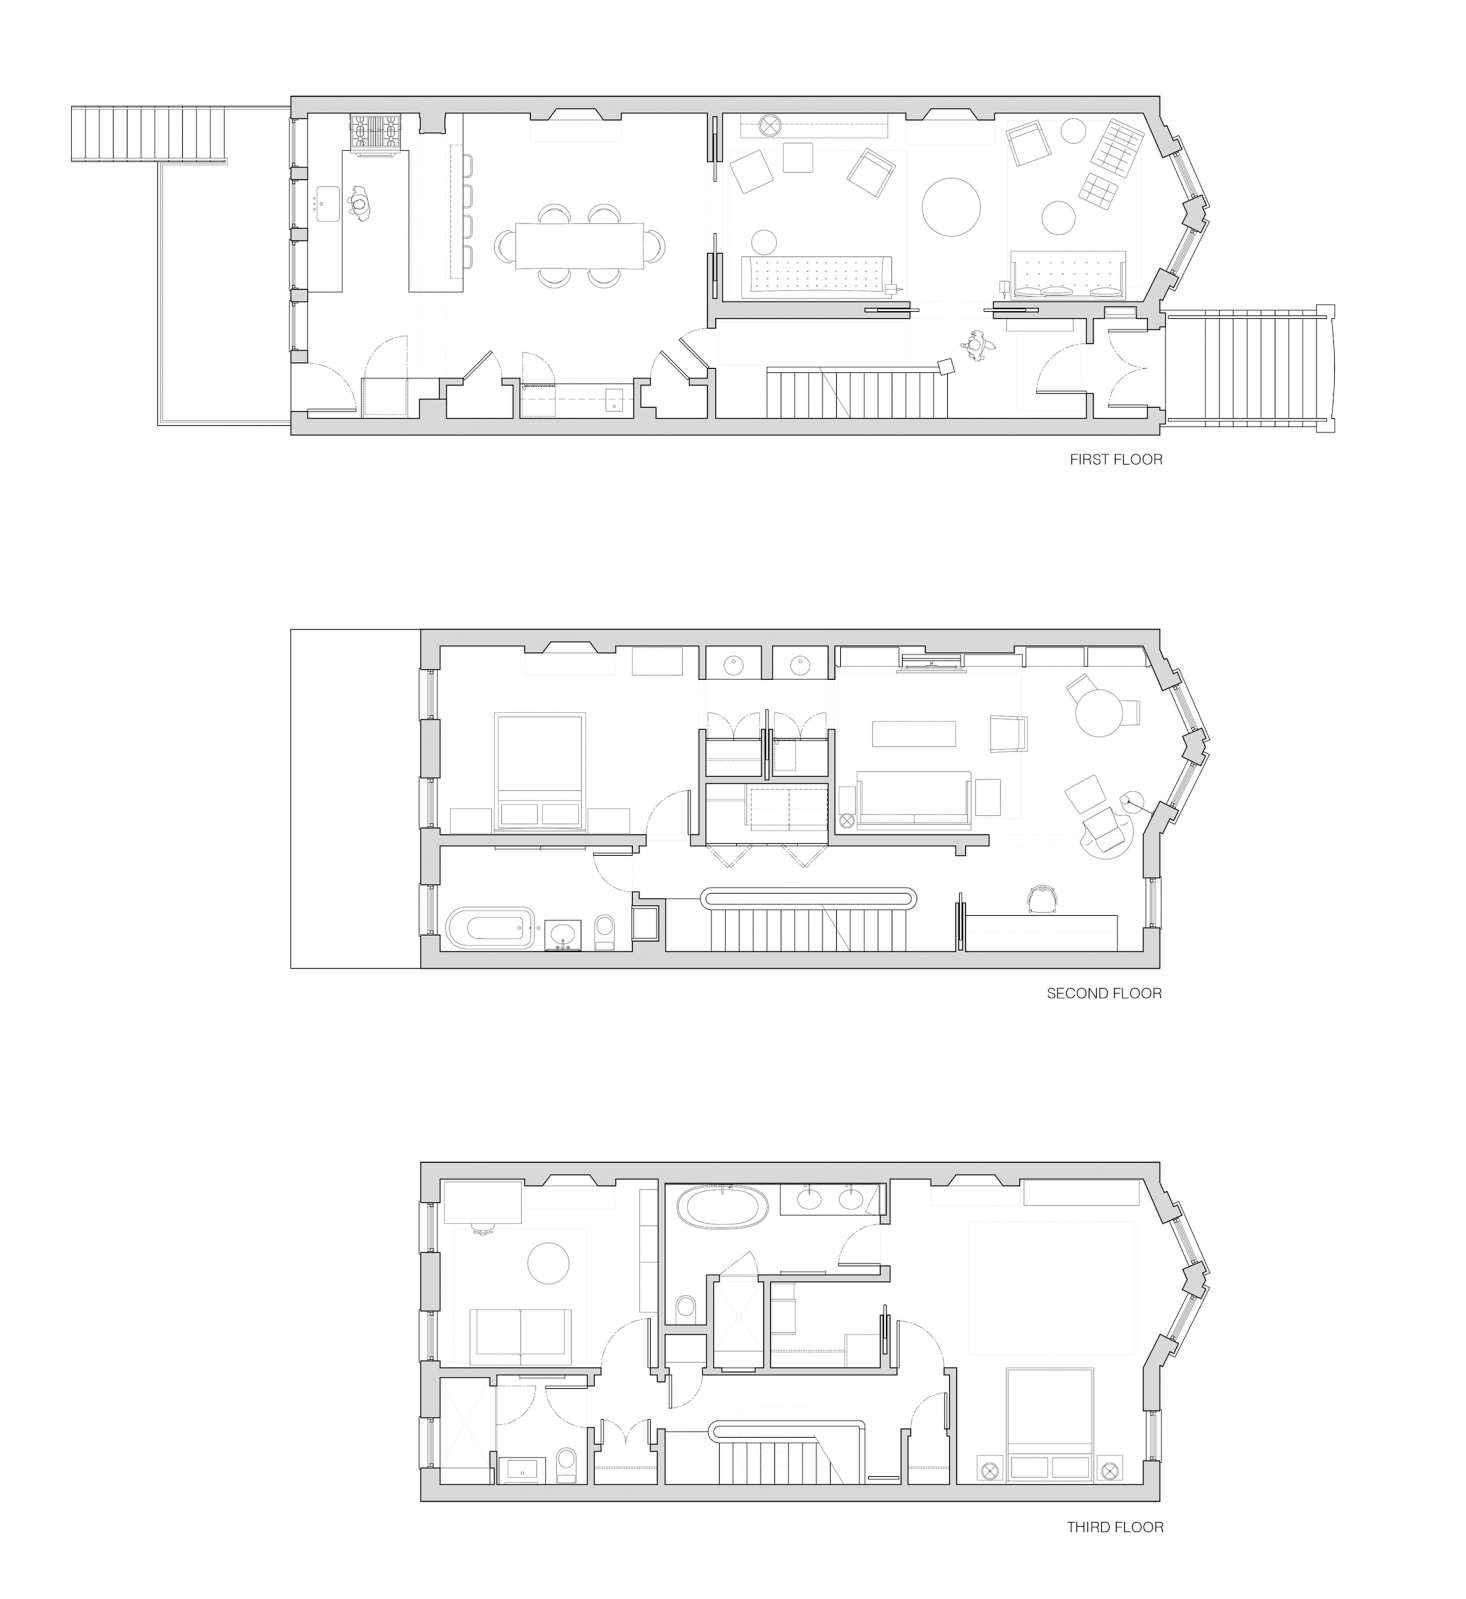 Brooklyn Prospect Heights townhouse floor plans by Bangia Agostinho Architecture | Remodelista